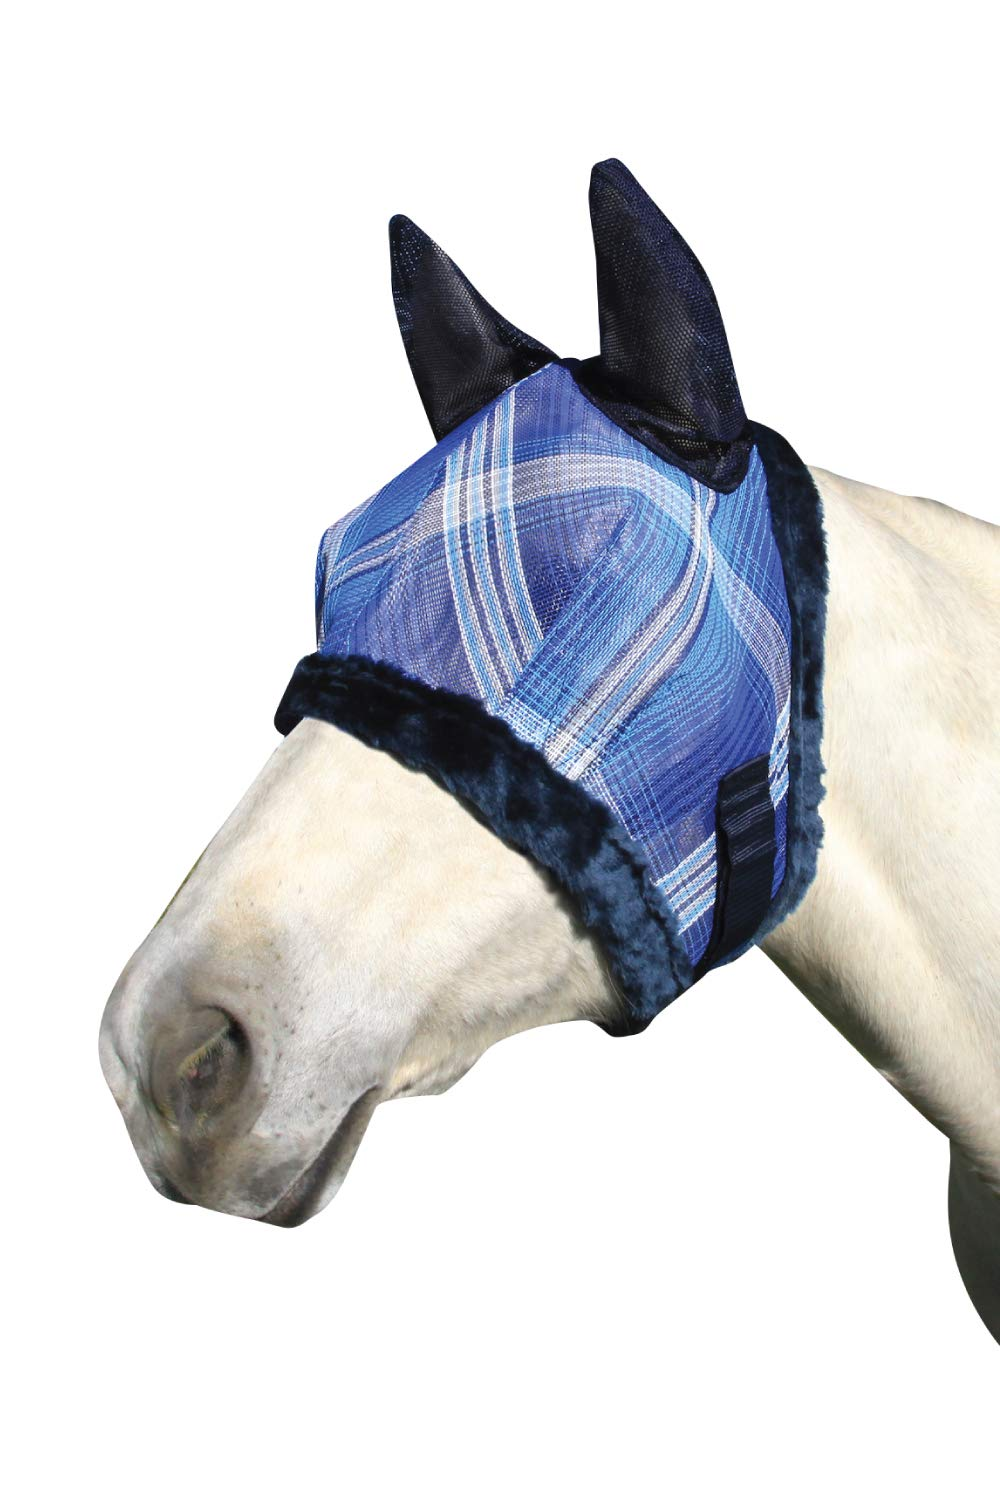 Kensington Horse Fly Mask with Protective Mesh and Plush Fleece Ears- Protection from Insect Bites and Perfect for Wound Recovery by Kensington Protective Products